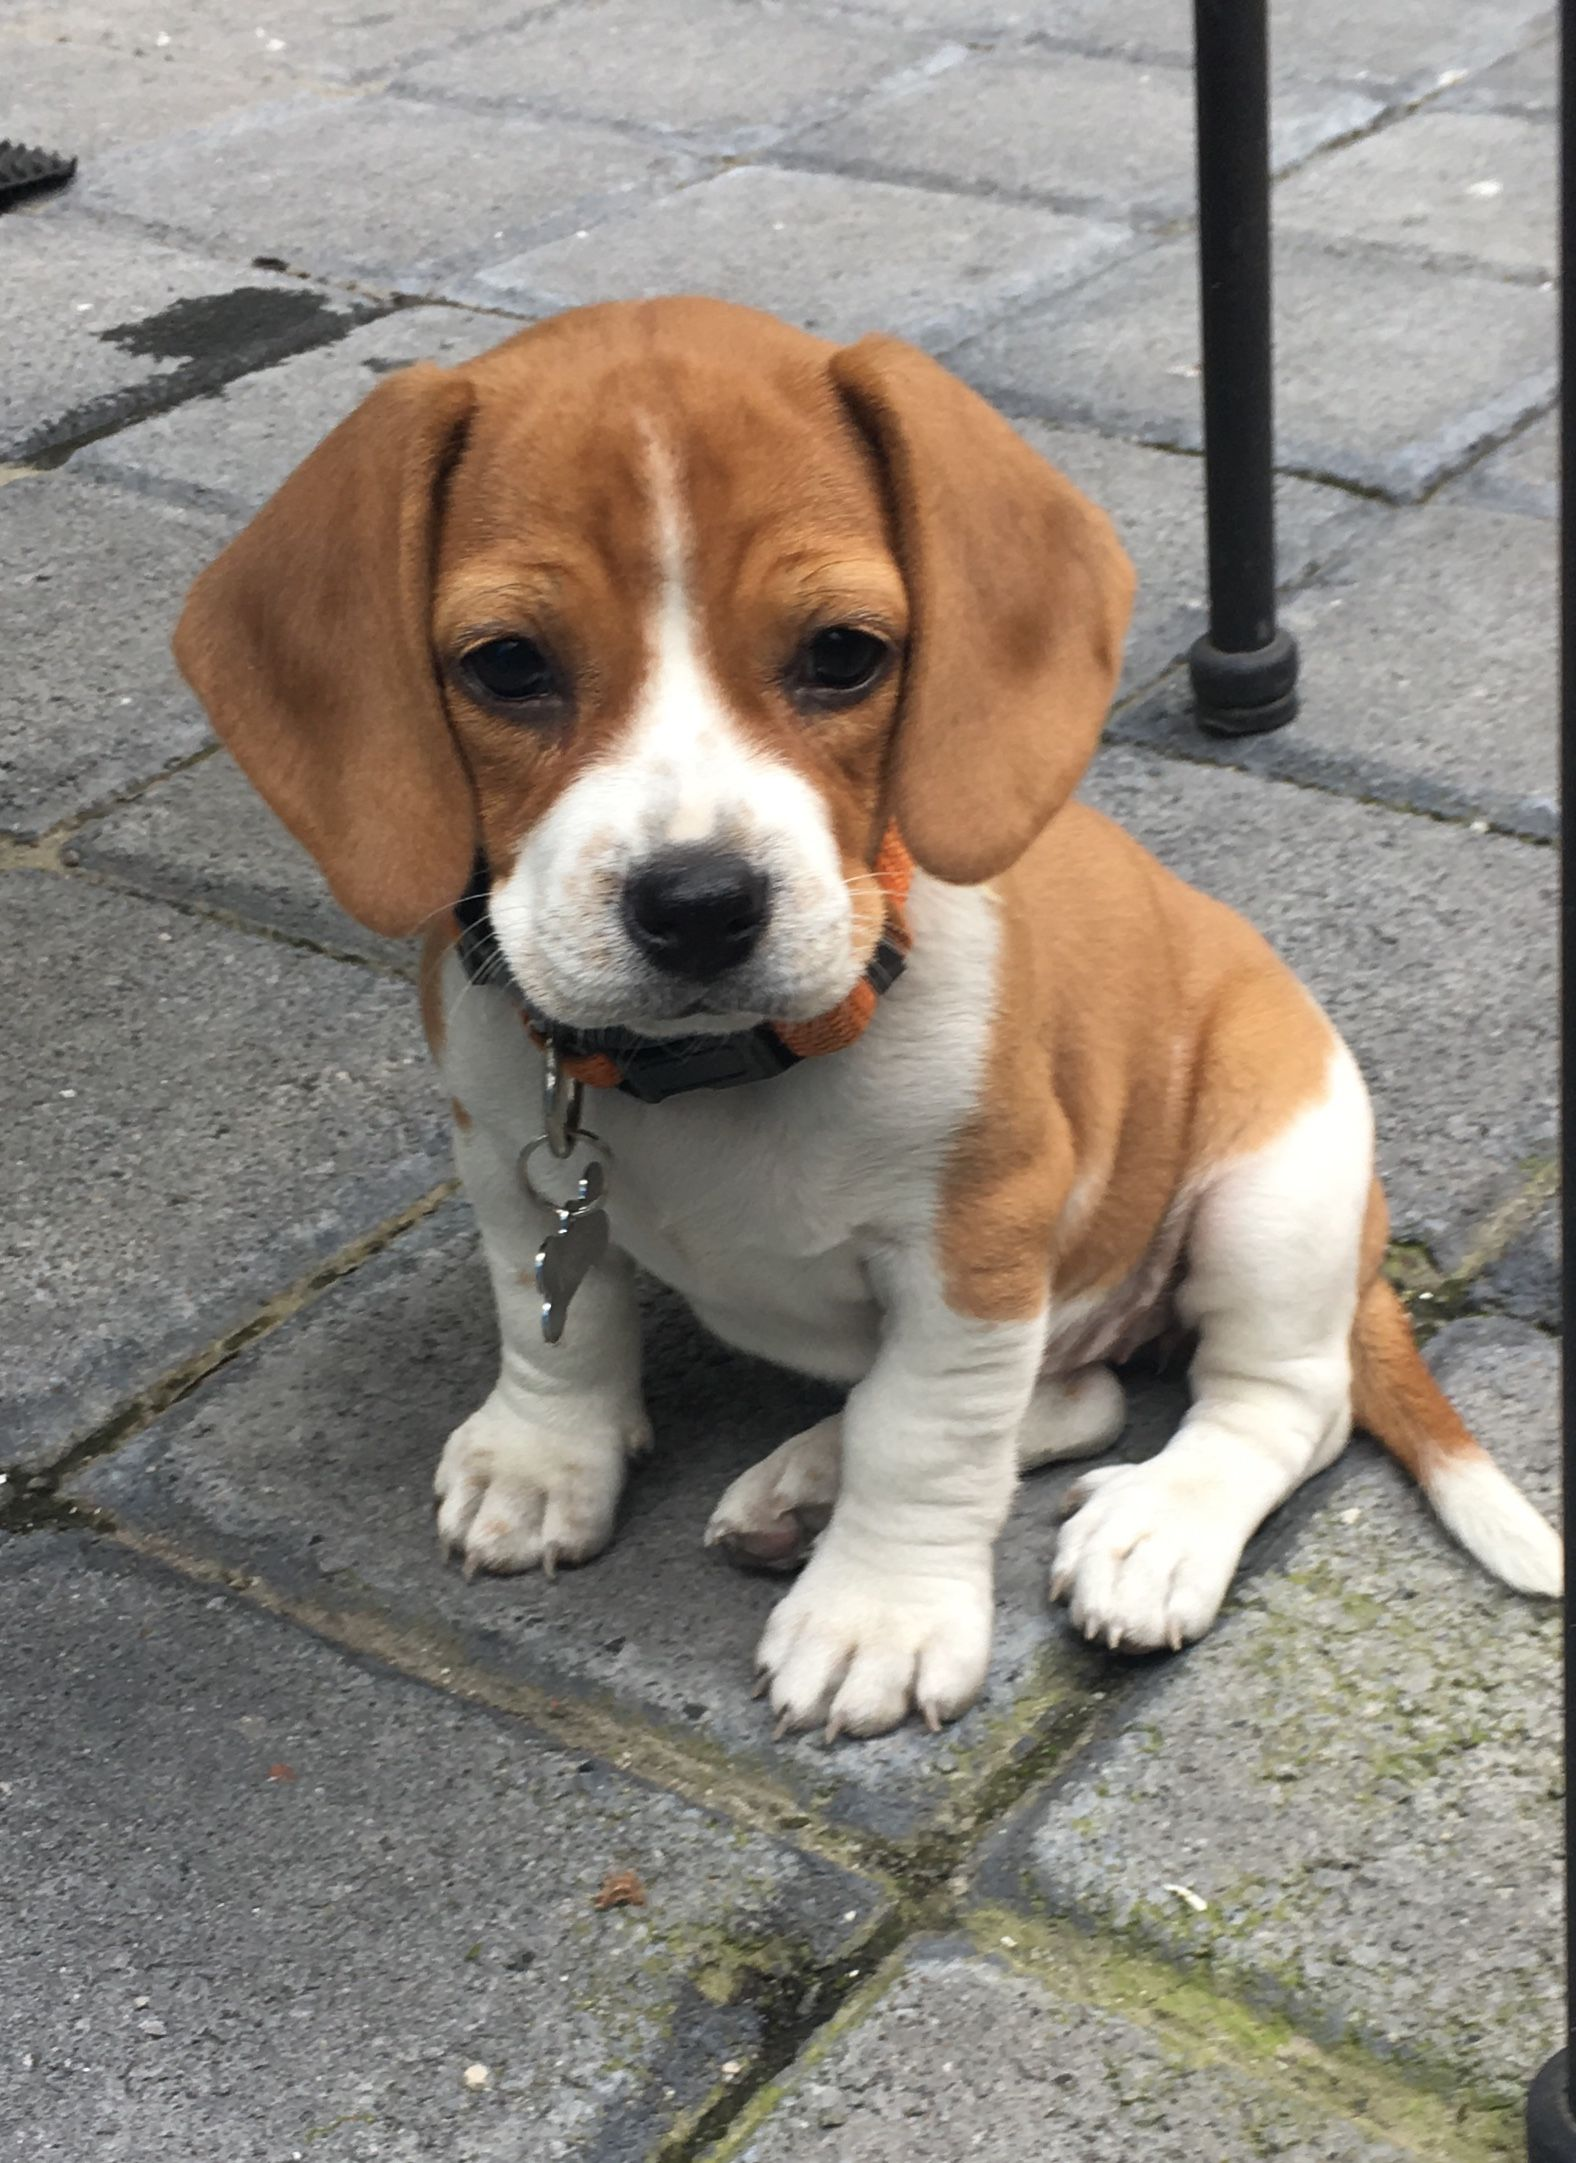 Baby Beagle Very Cute Dogs Cute Dogs Cute Little Puppies